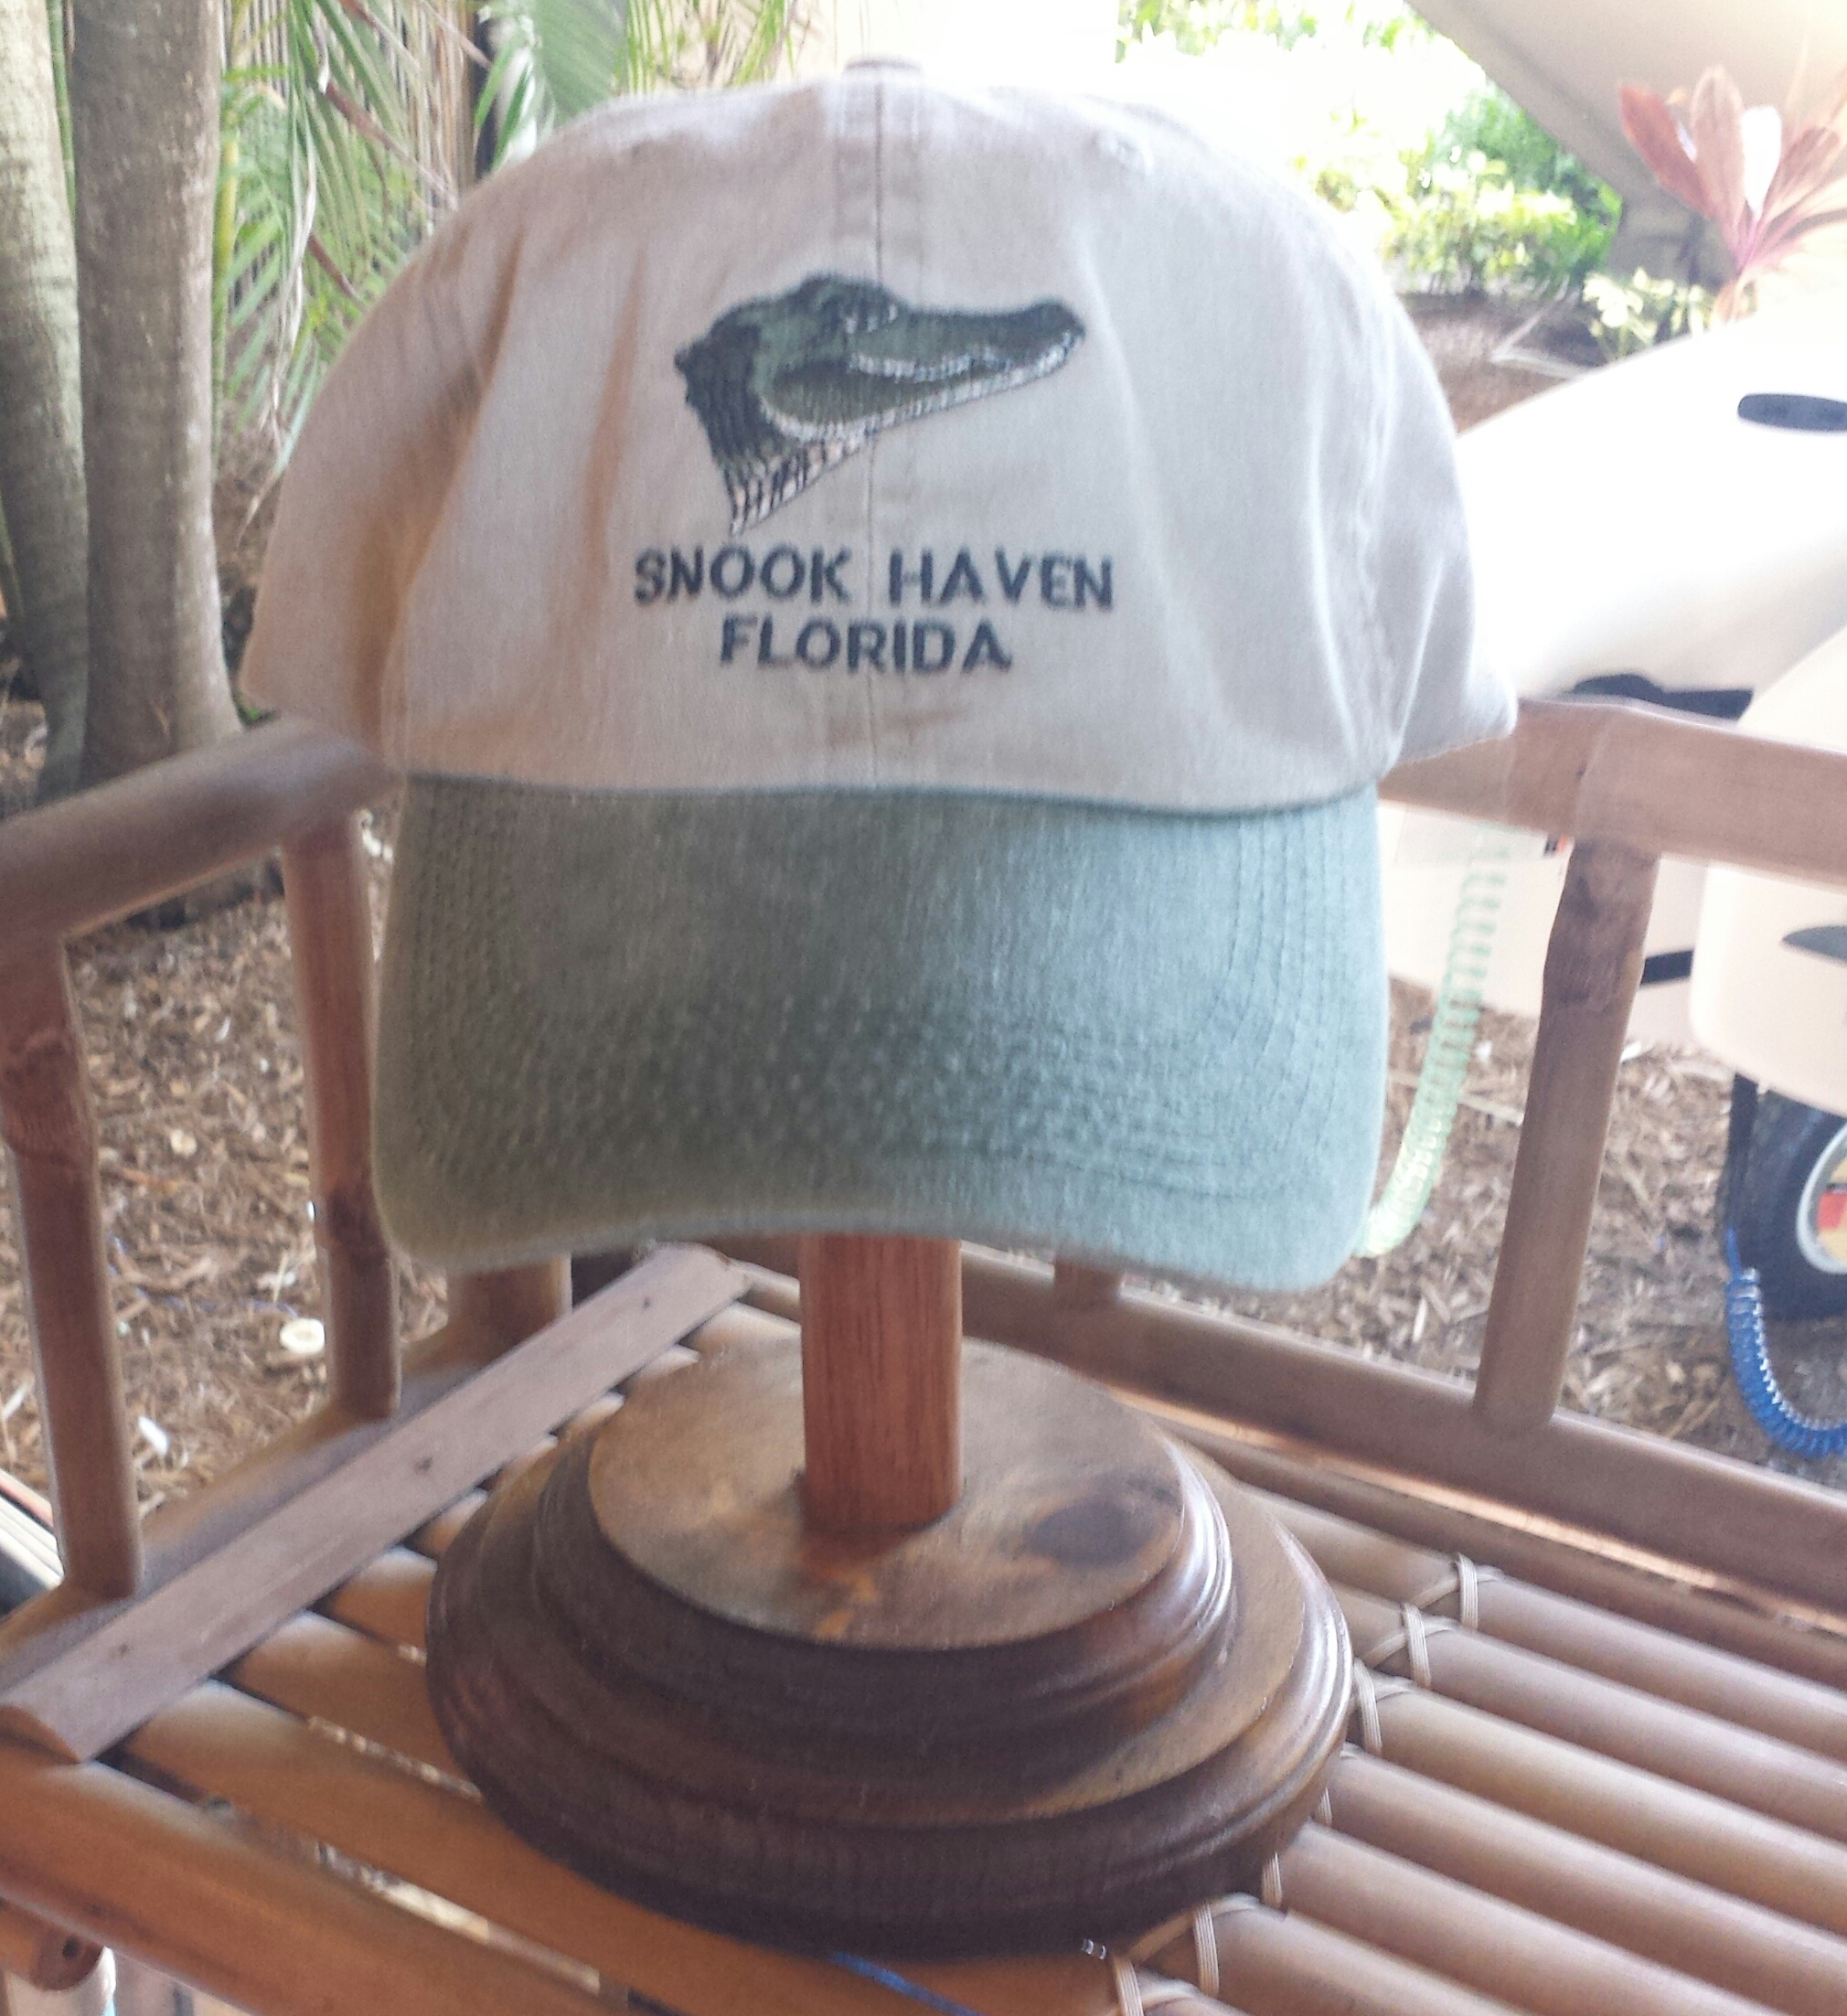 Snook Haven Ball Caps